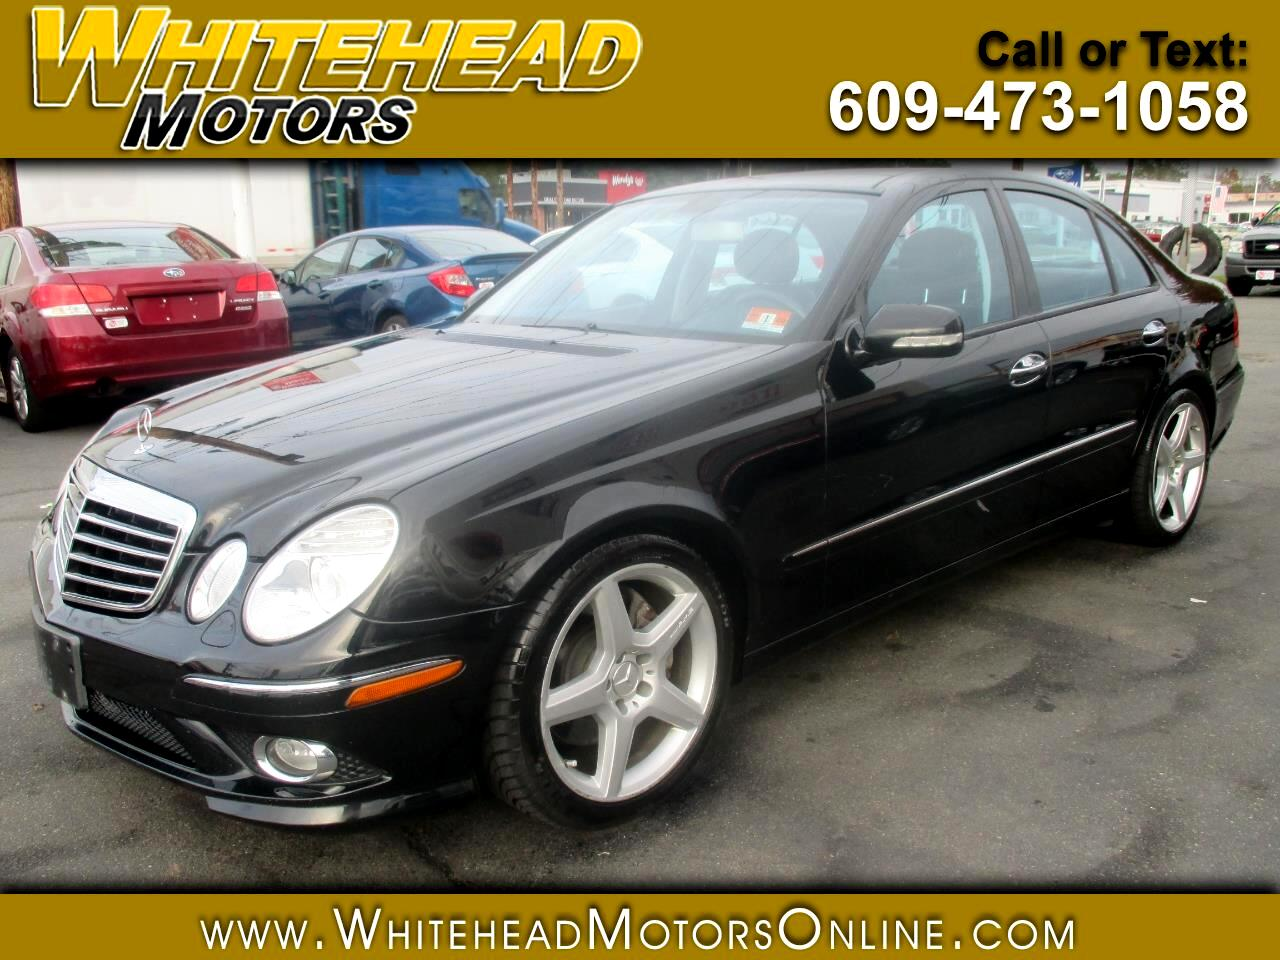 2009 Mercedes-Benz E-Class 4dr Sdn Luxury 3.5L RWD